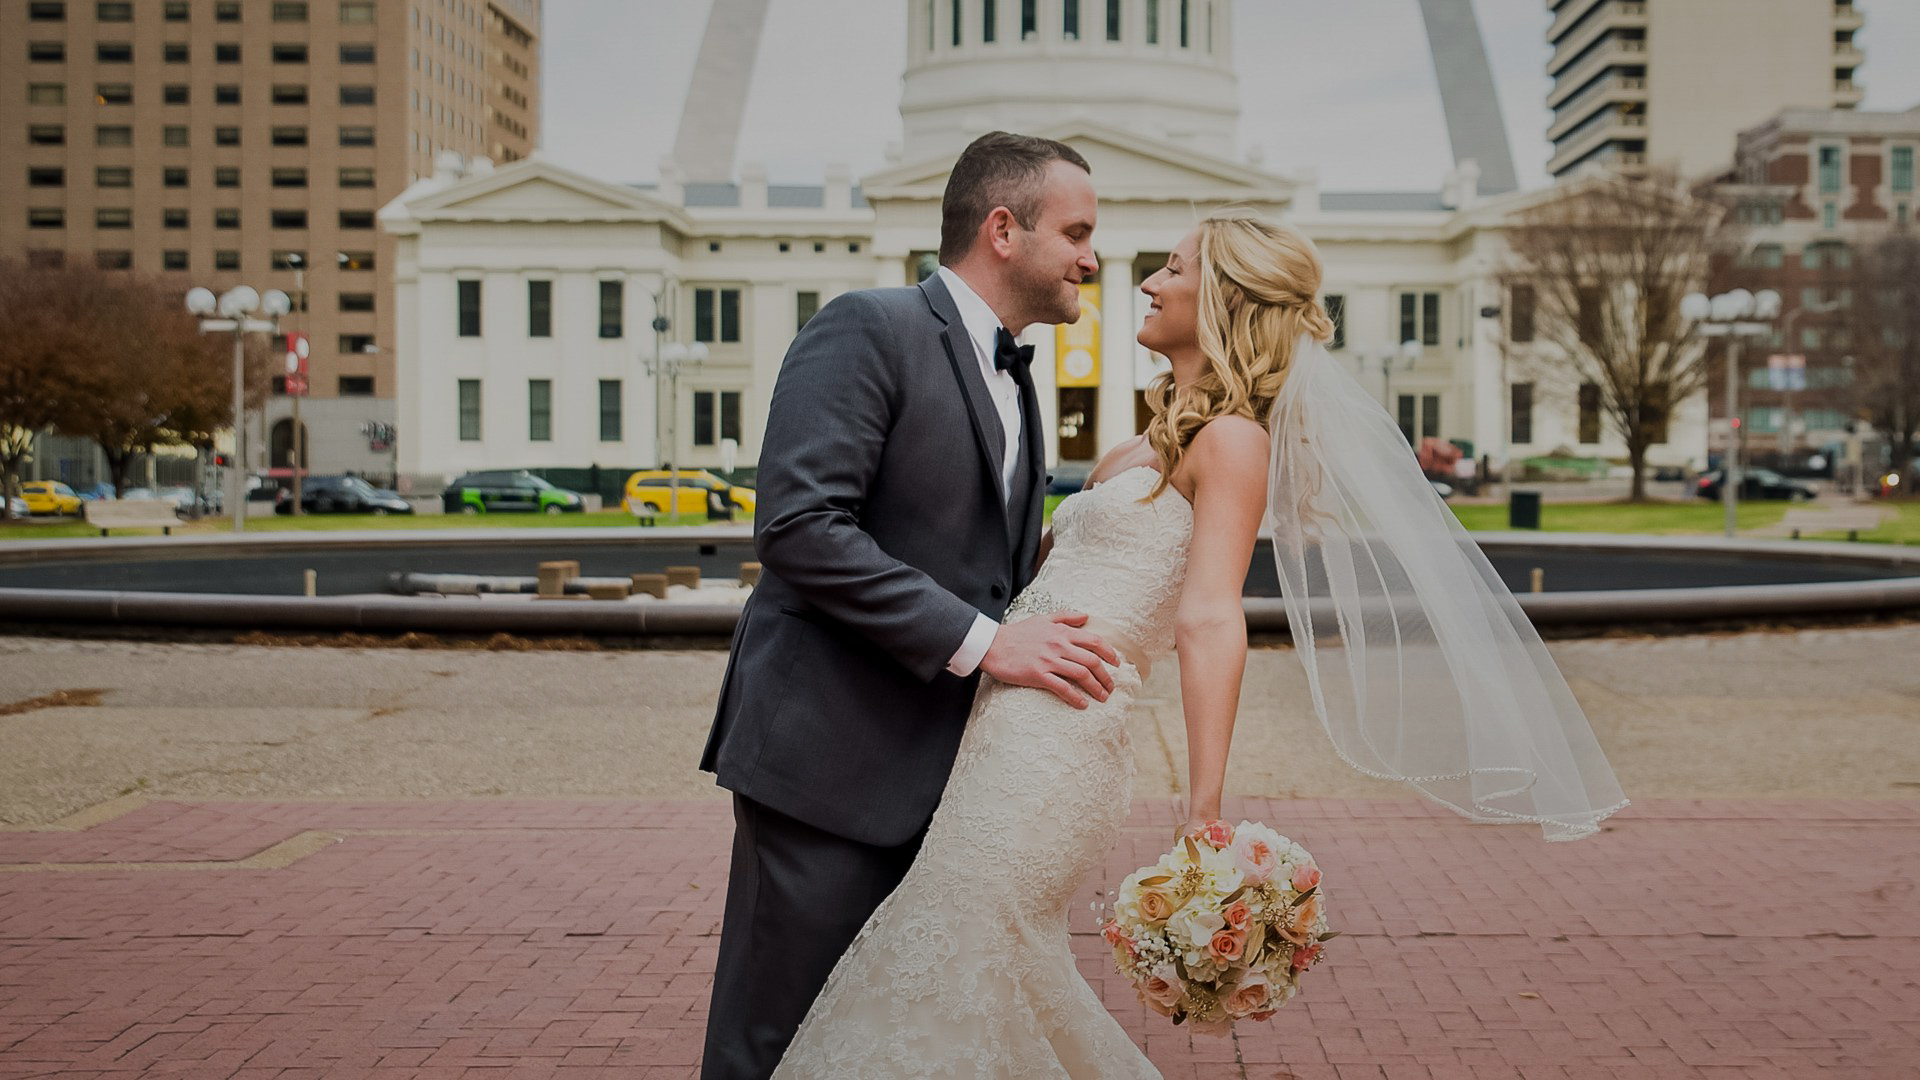 Check portfolios, pricing and availability for wedding photographers in St. Louis